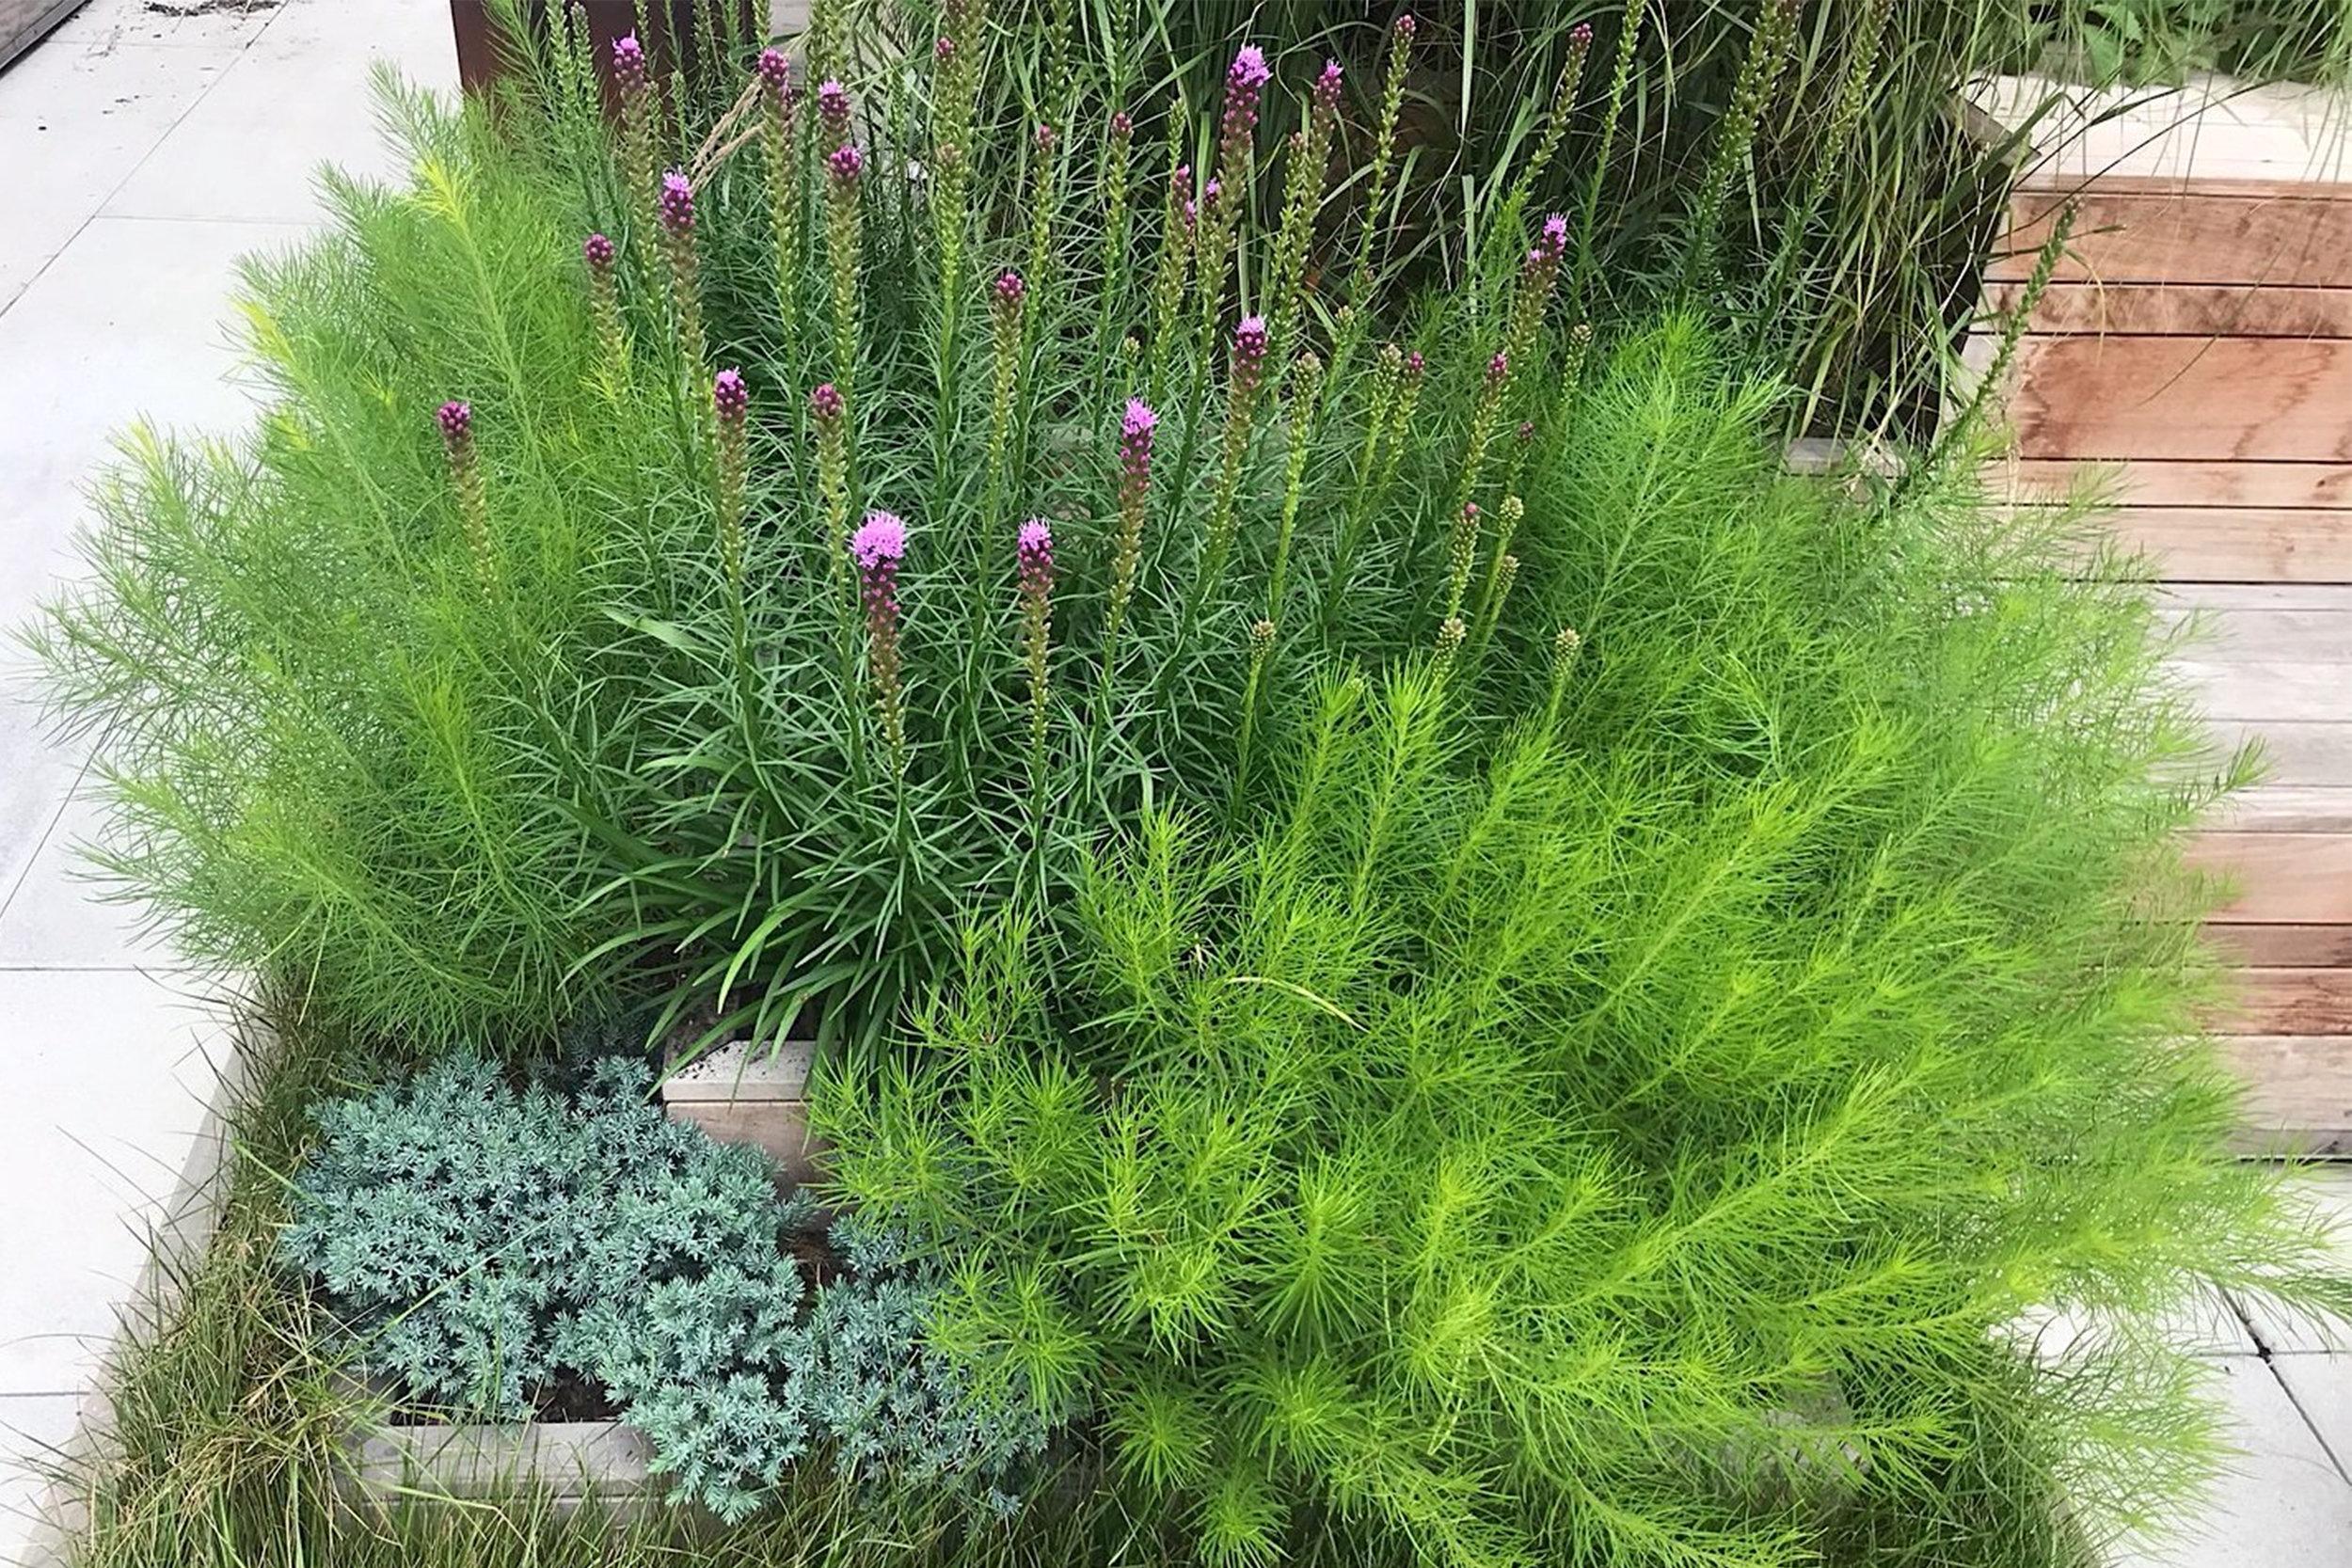 A close-up of some of the plantings by Morano Landscape & Garden Design.